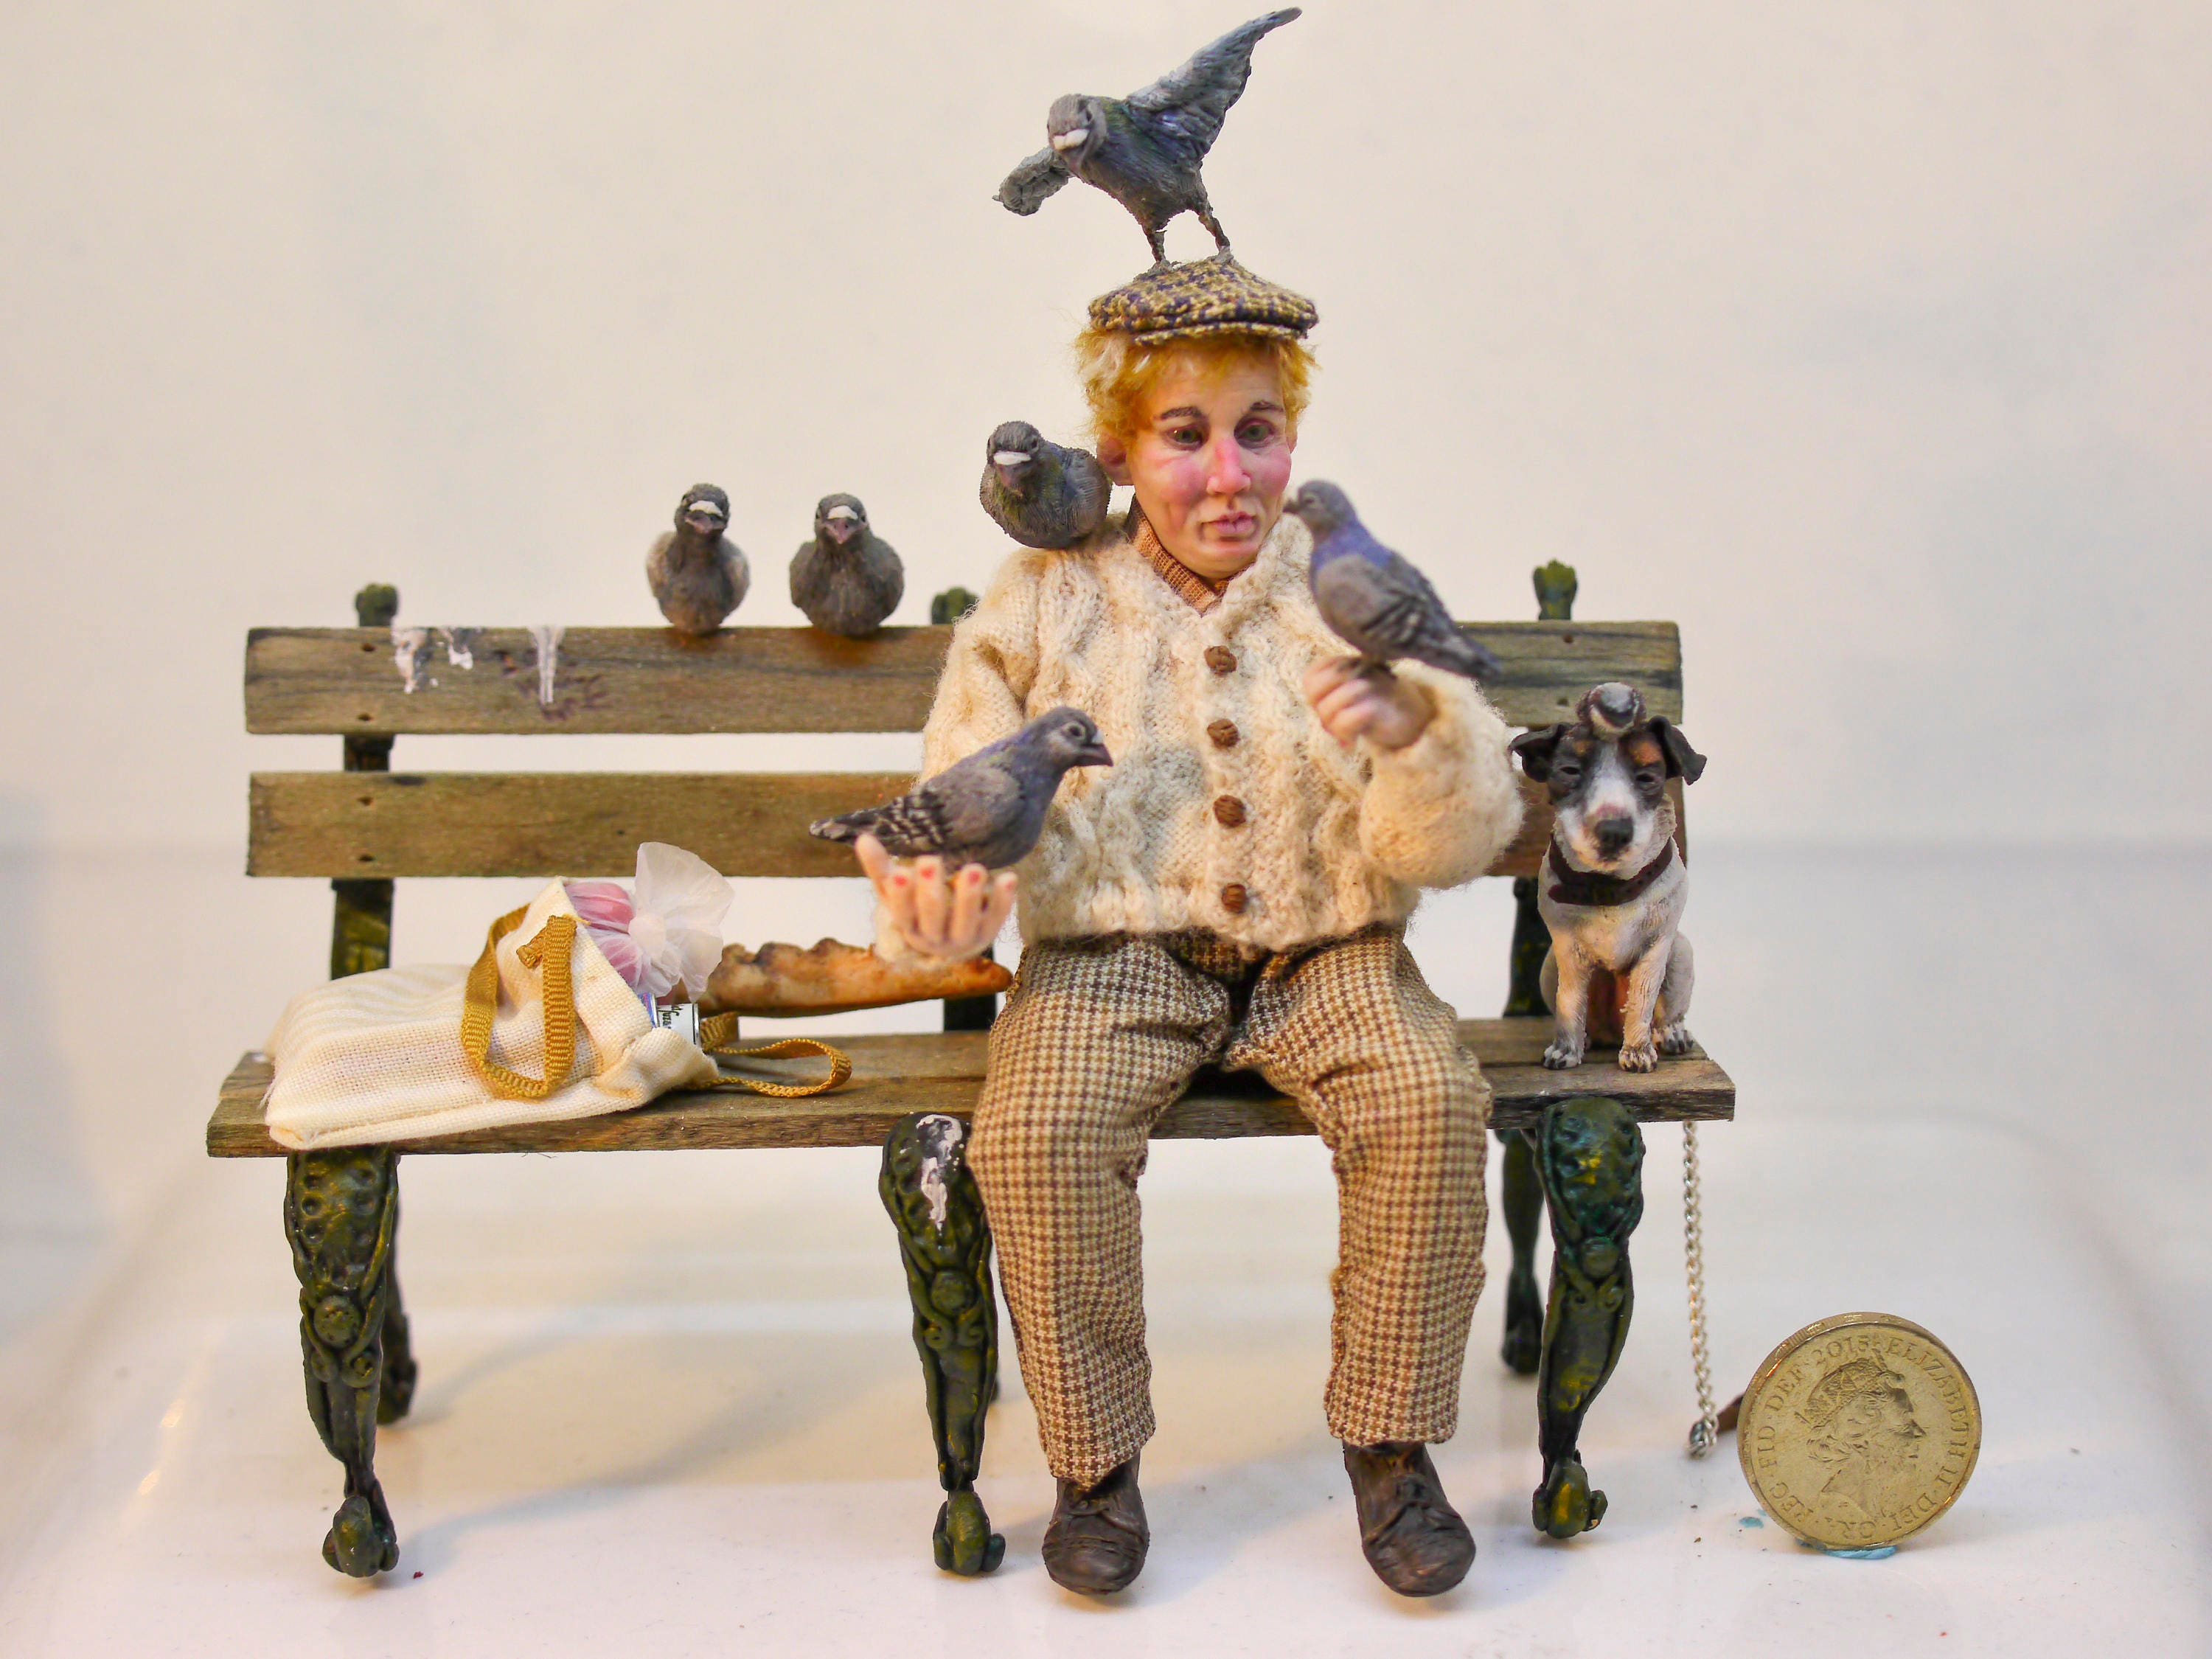 112th Pigeon man and friends. OOAK polymer clay dolls house collectible